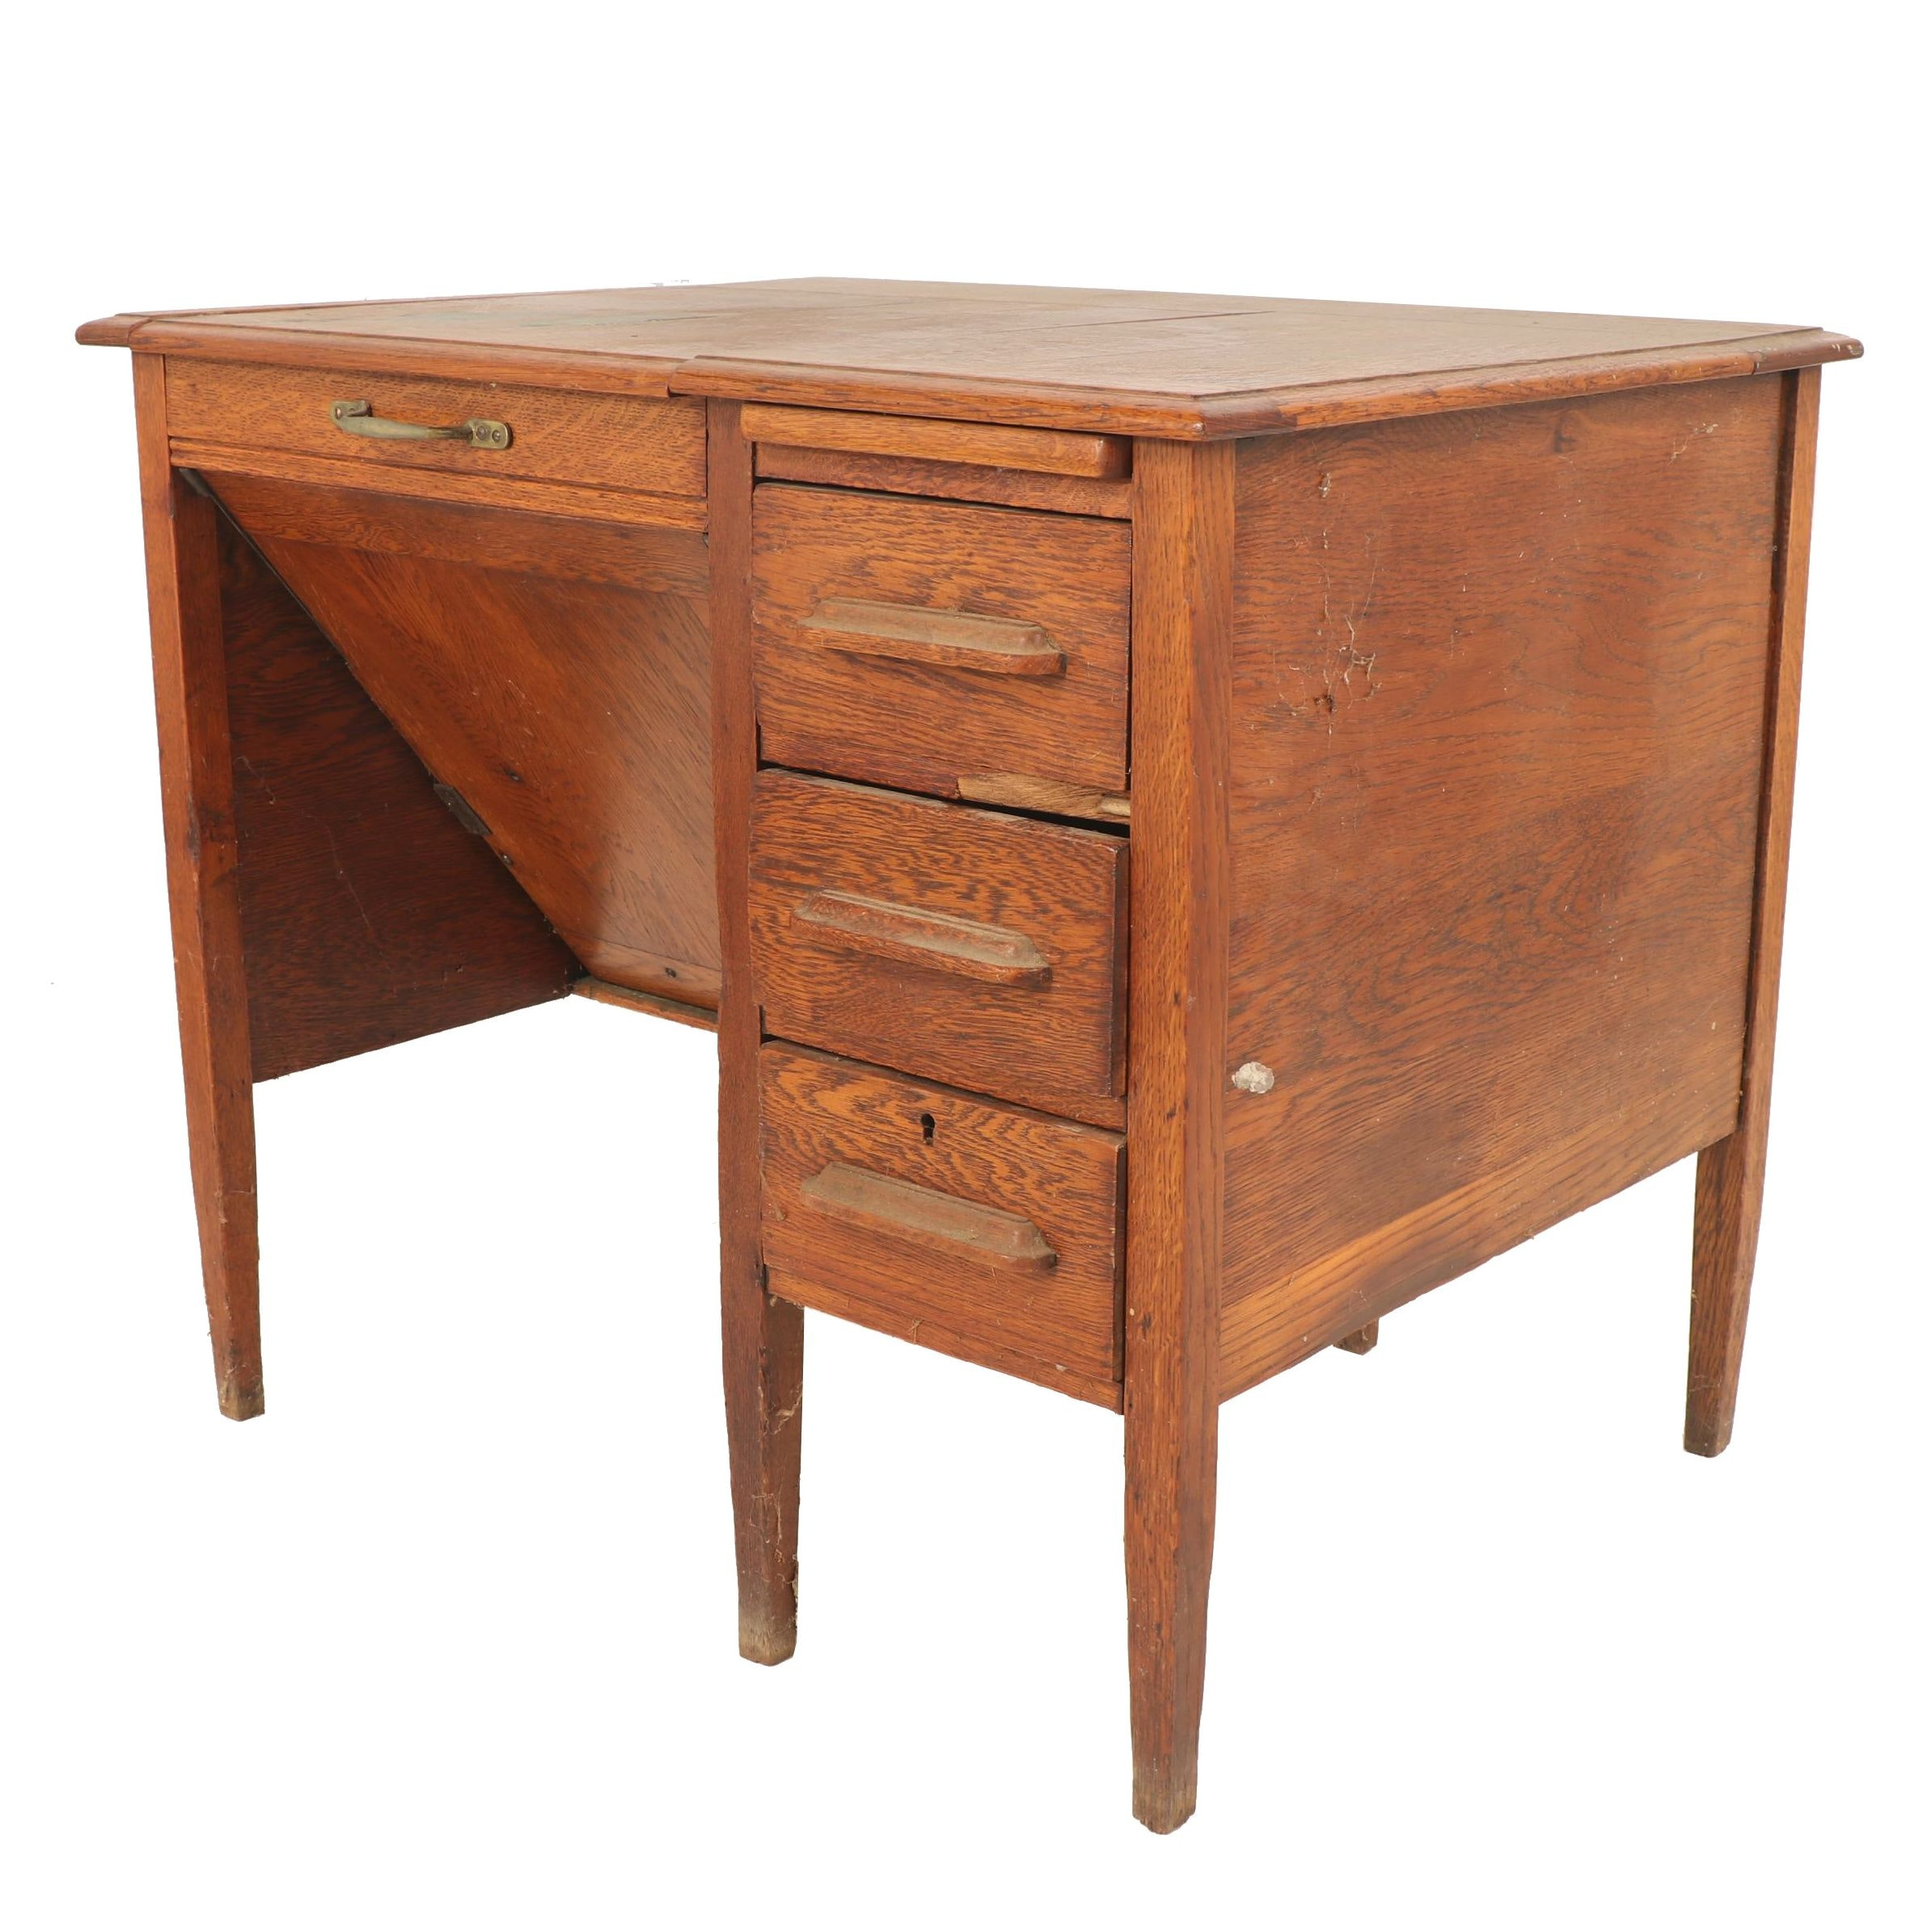 Oak Desk with Folding Compartment, Early 20th Century